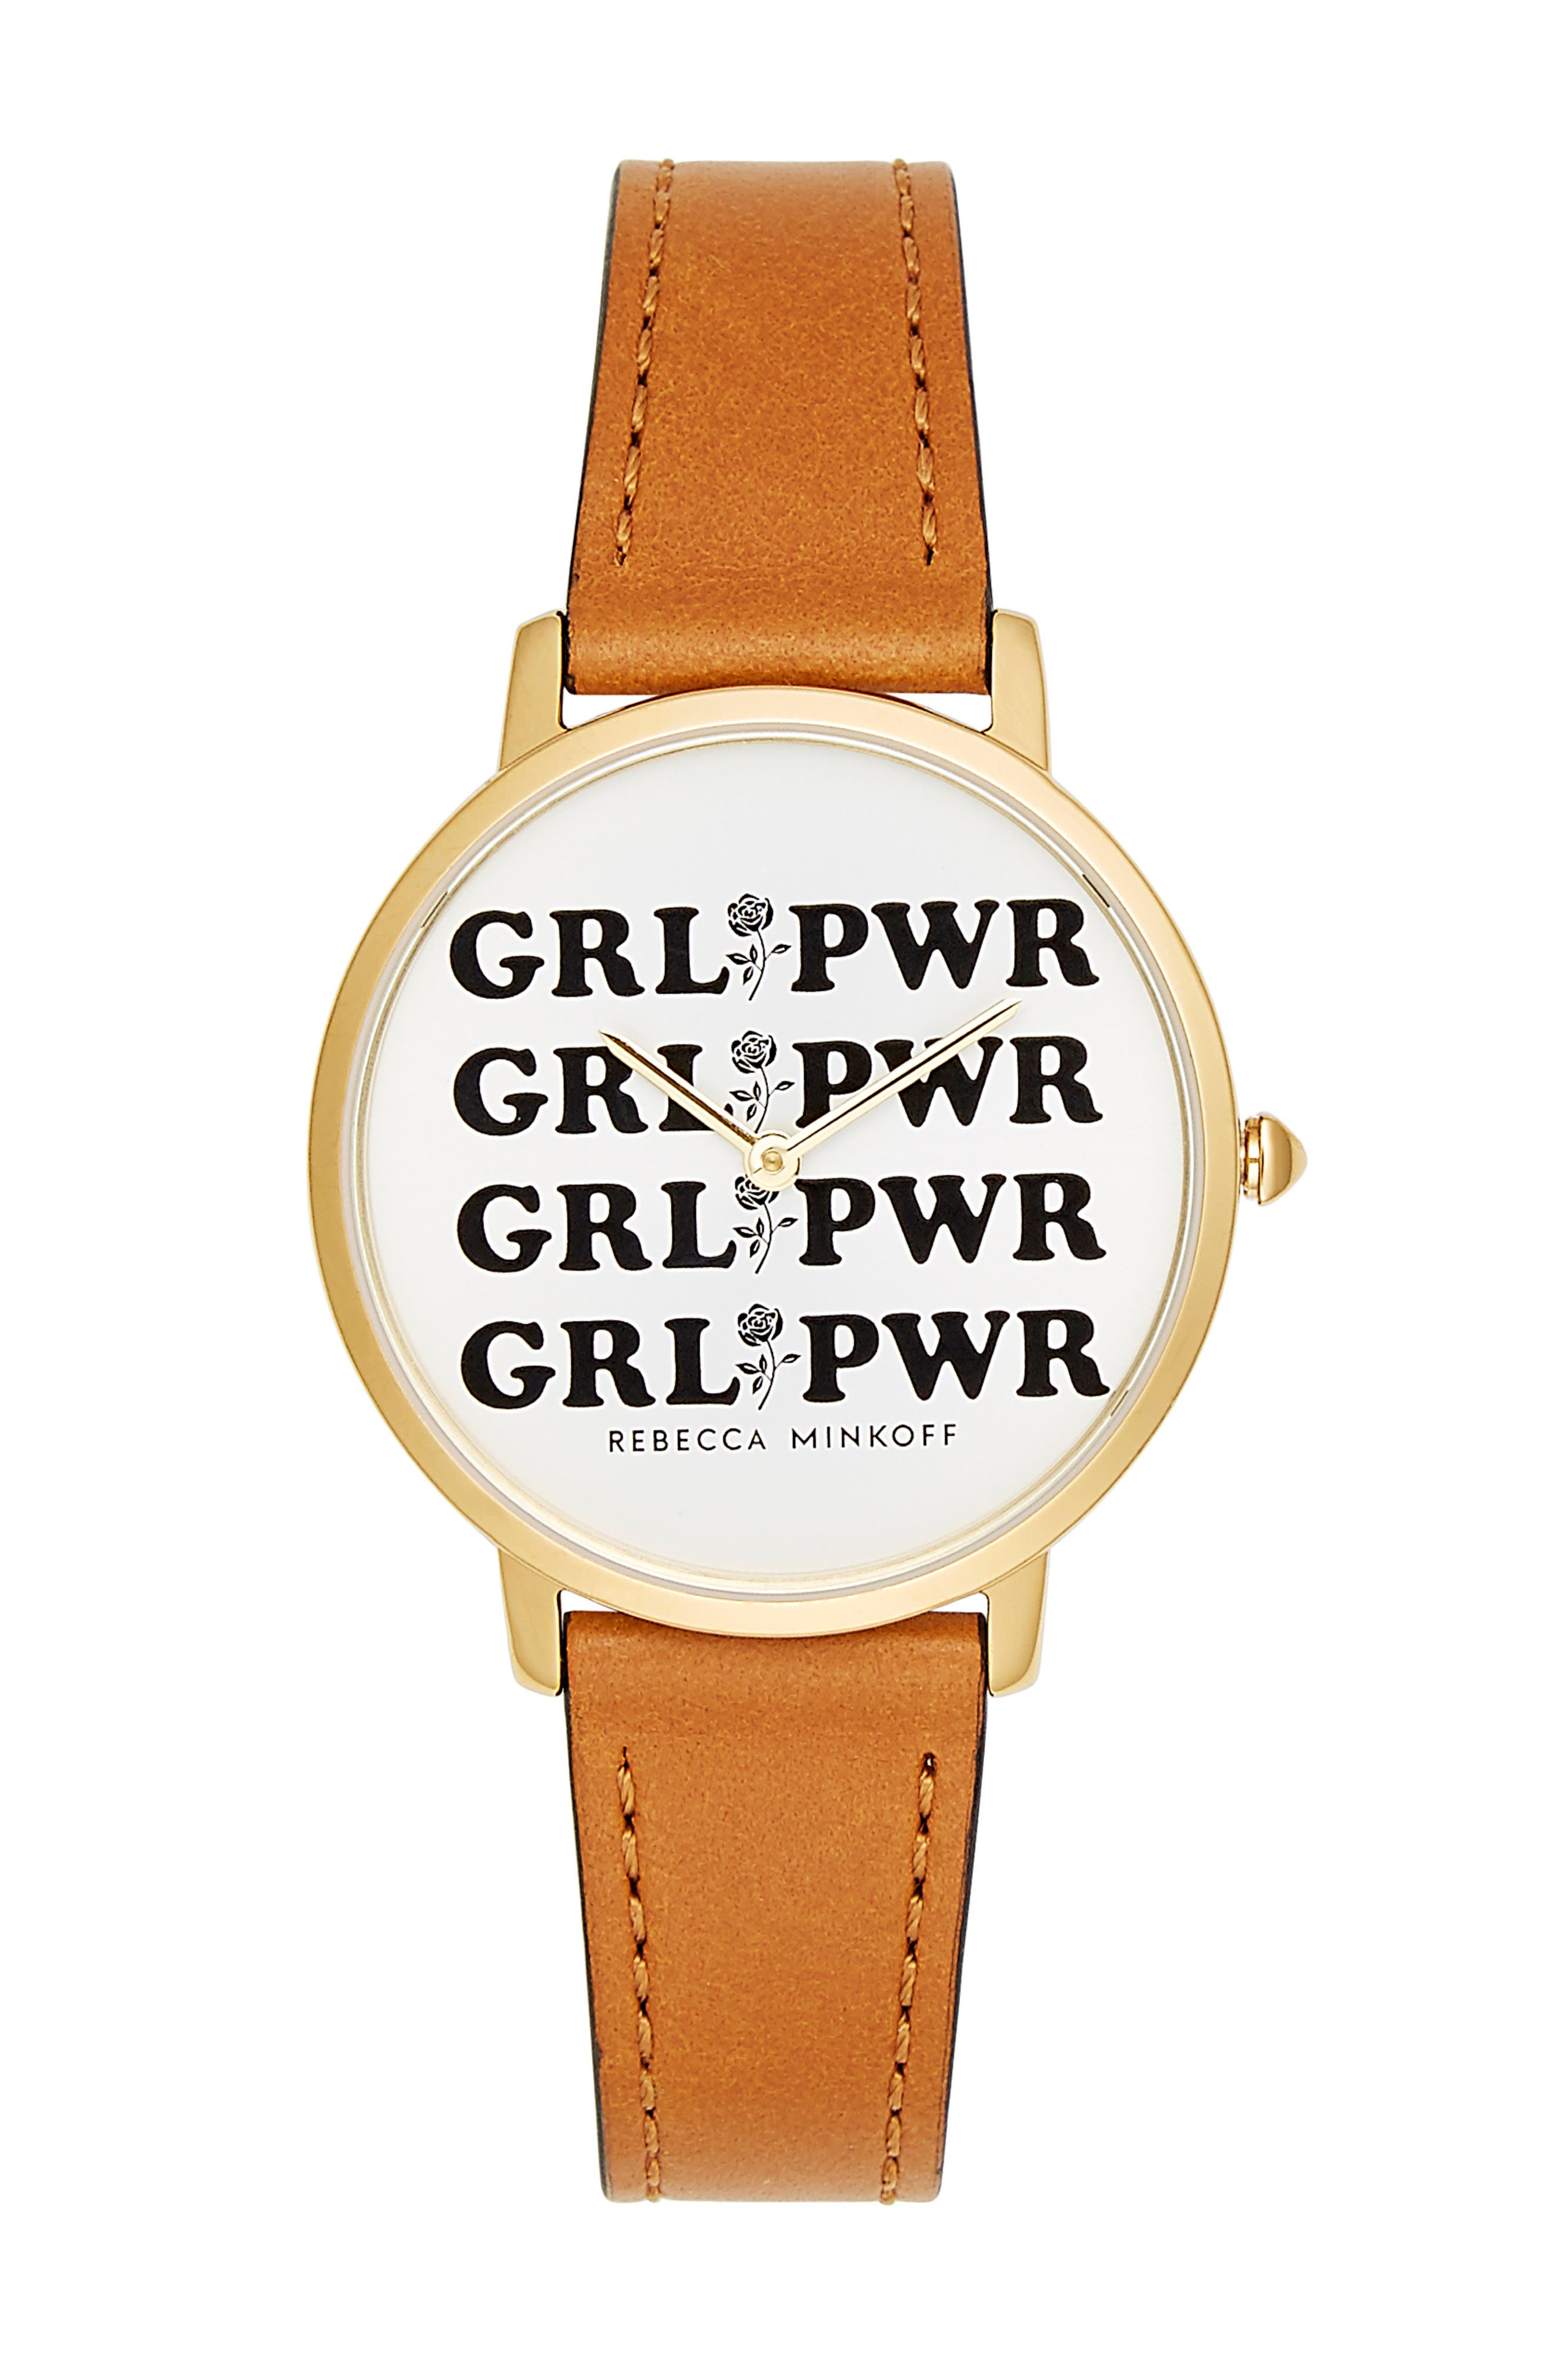 Rebeca Minkoff Major GRL PWR Leather Strap Watch, 35mm,                         Main,                         color, ALMOND/ SILVER/ GOLD